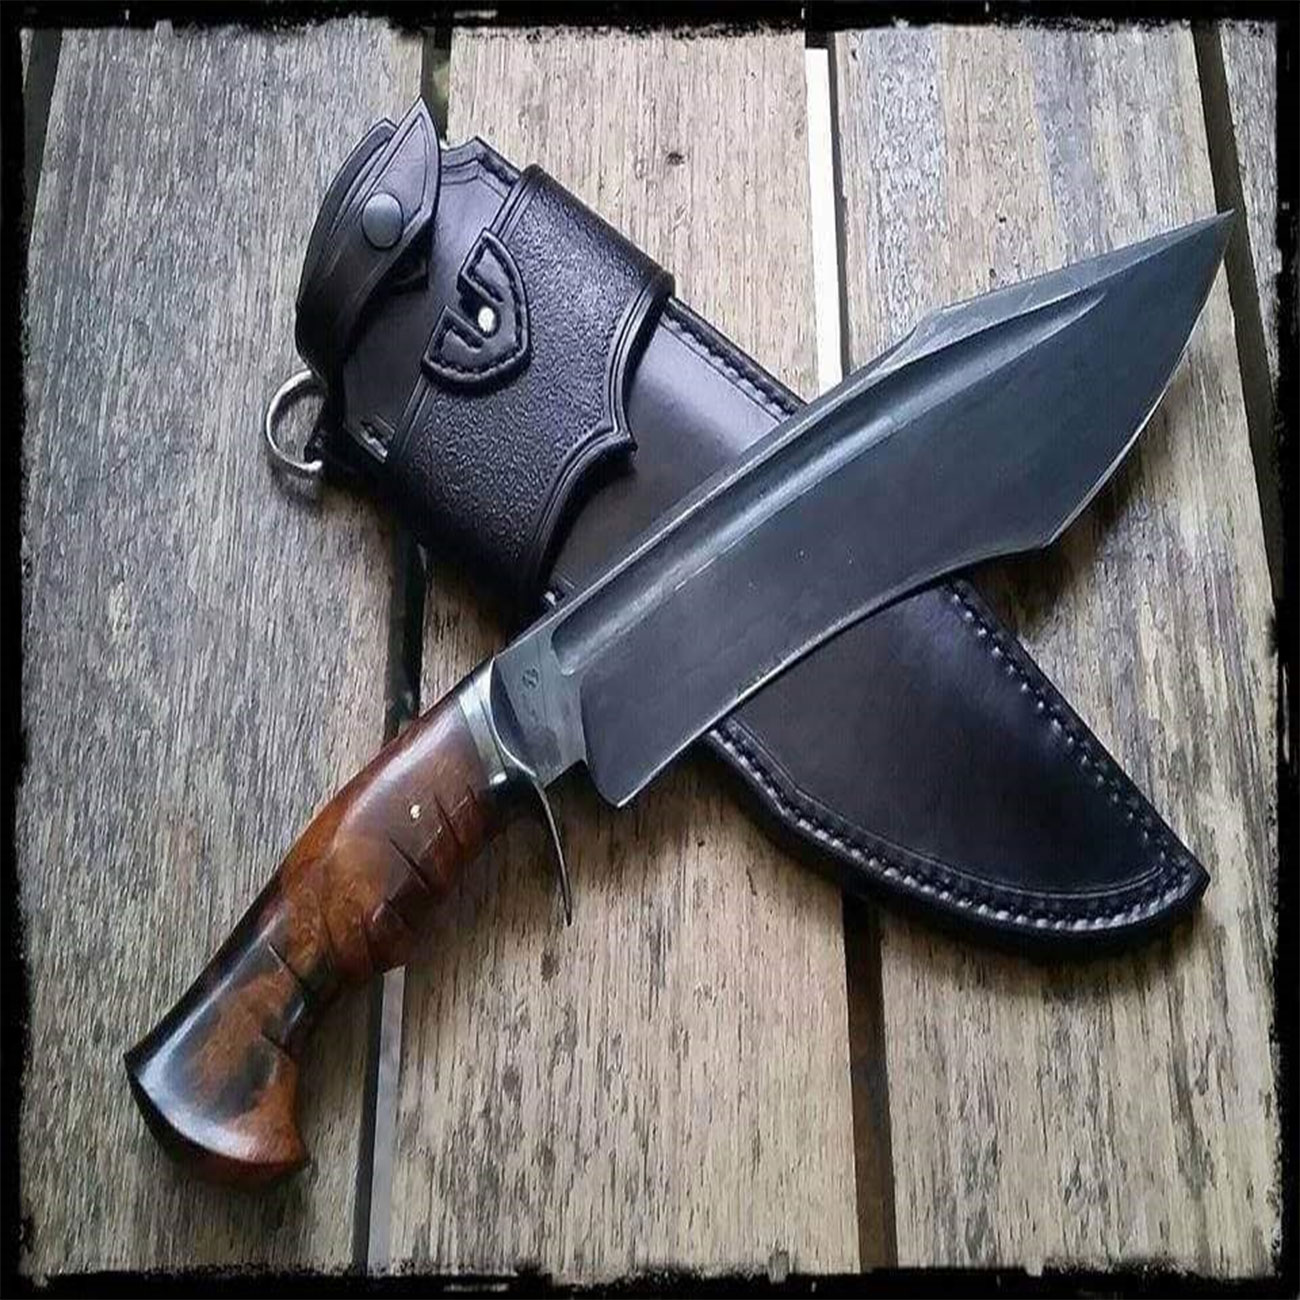 High carbon steel 1095 hand made custom bowie